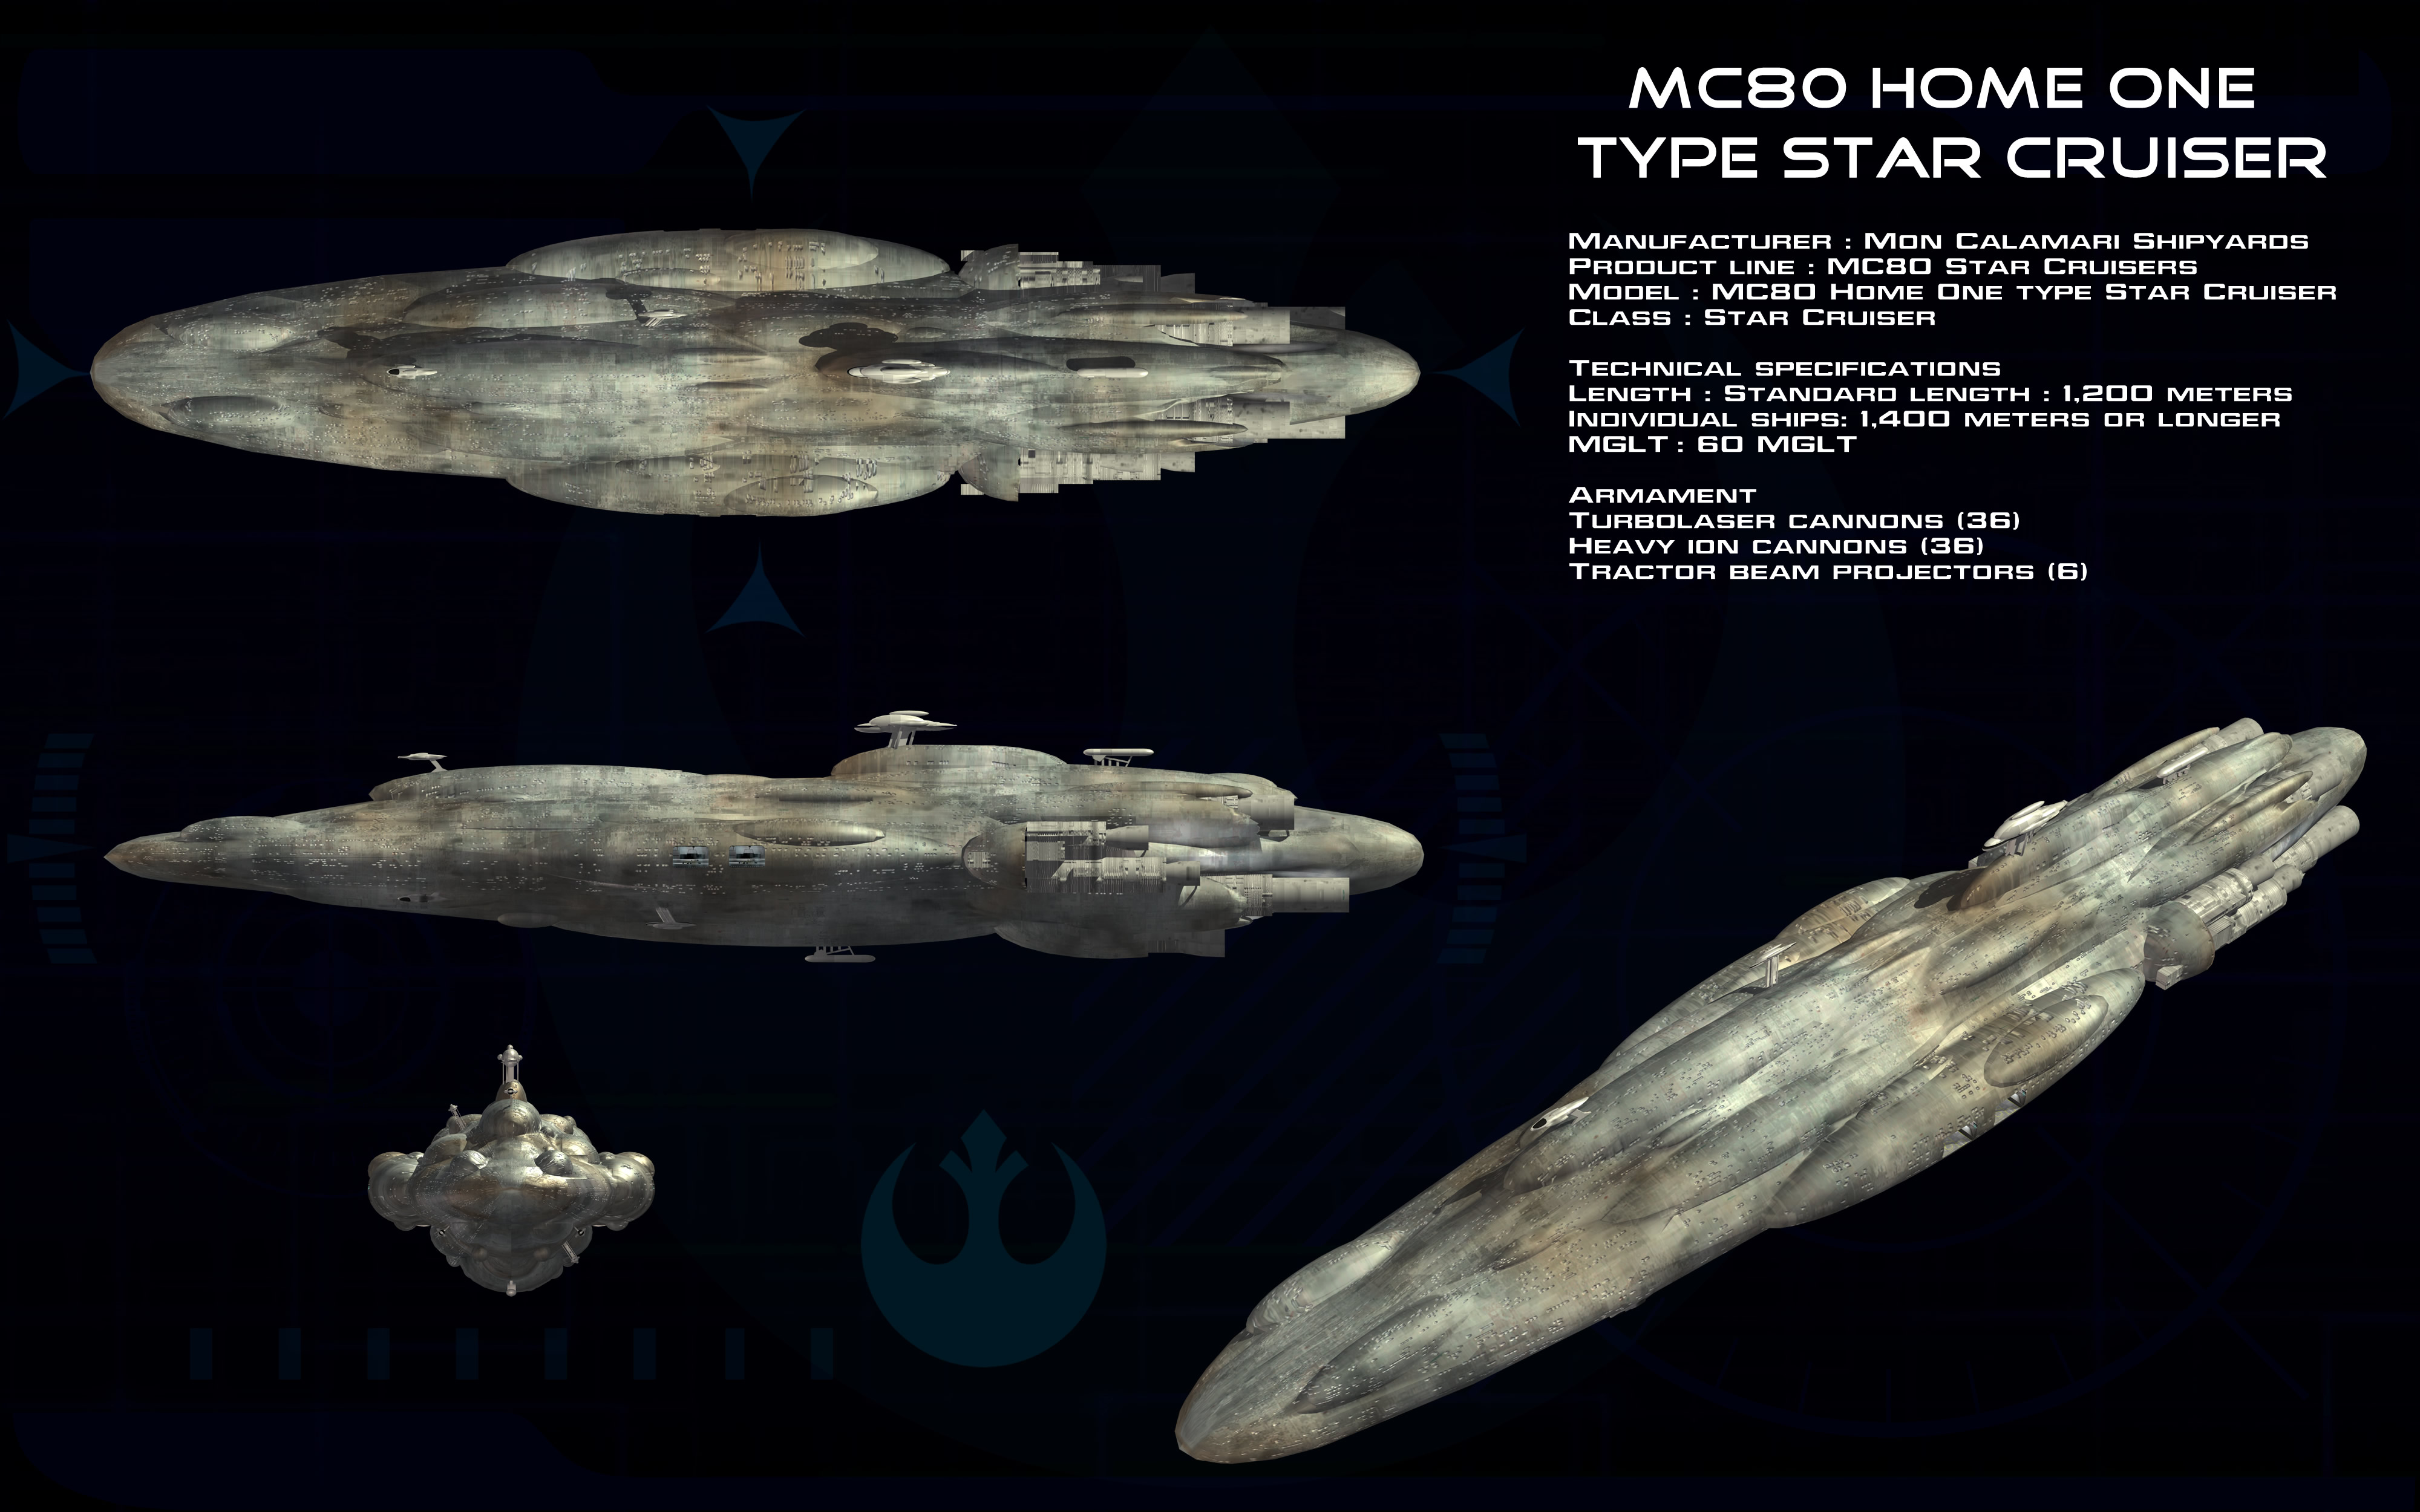 Diagram Of Millenium Falcon Wiring Diagrams Mtd Lawn Mower Model 37448a Mc 80 Home One Type Star Cruiser Ortho By Unusualsuspex On The Millennium Poster